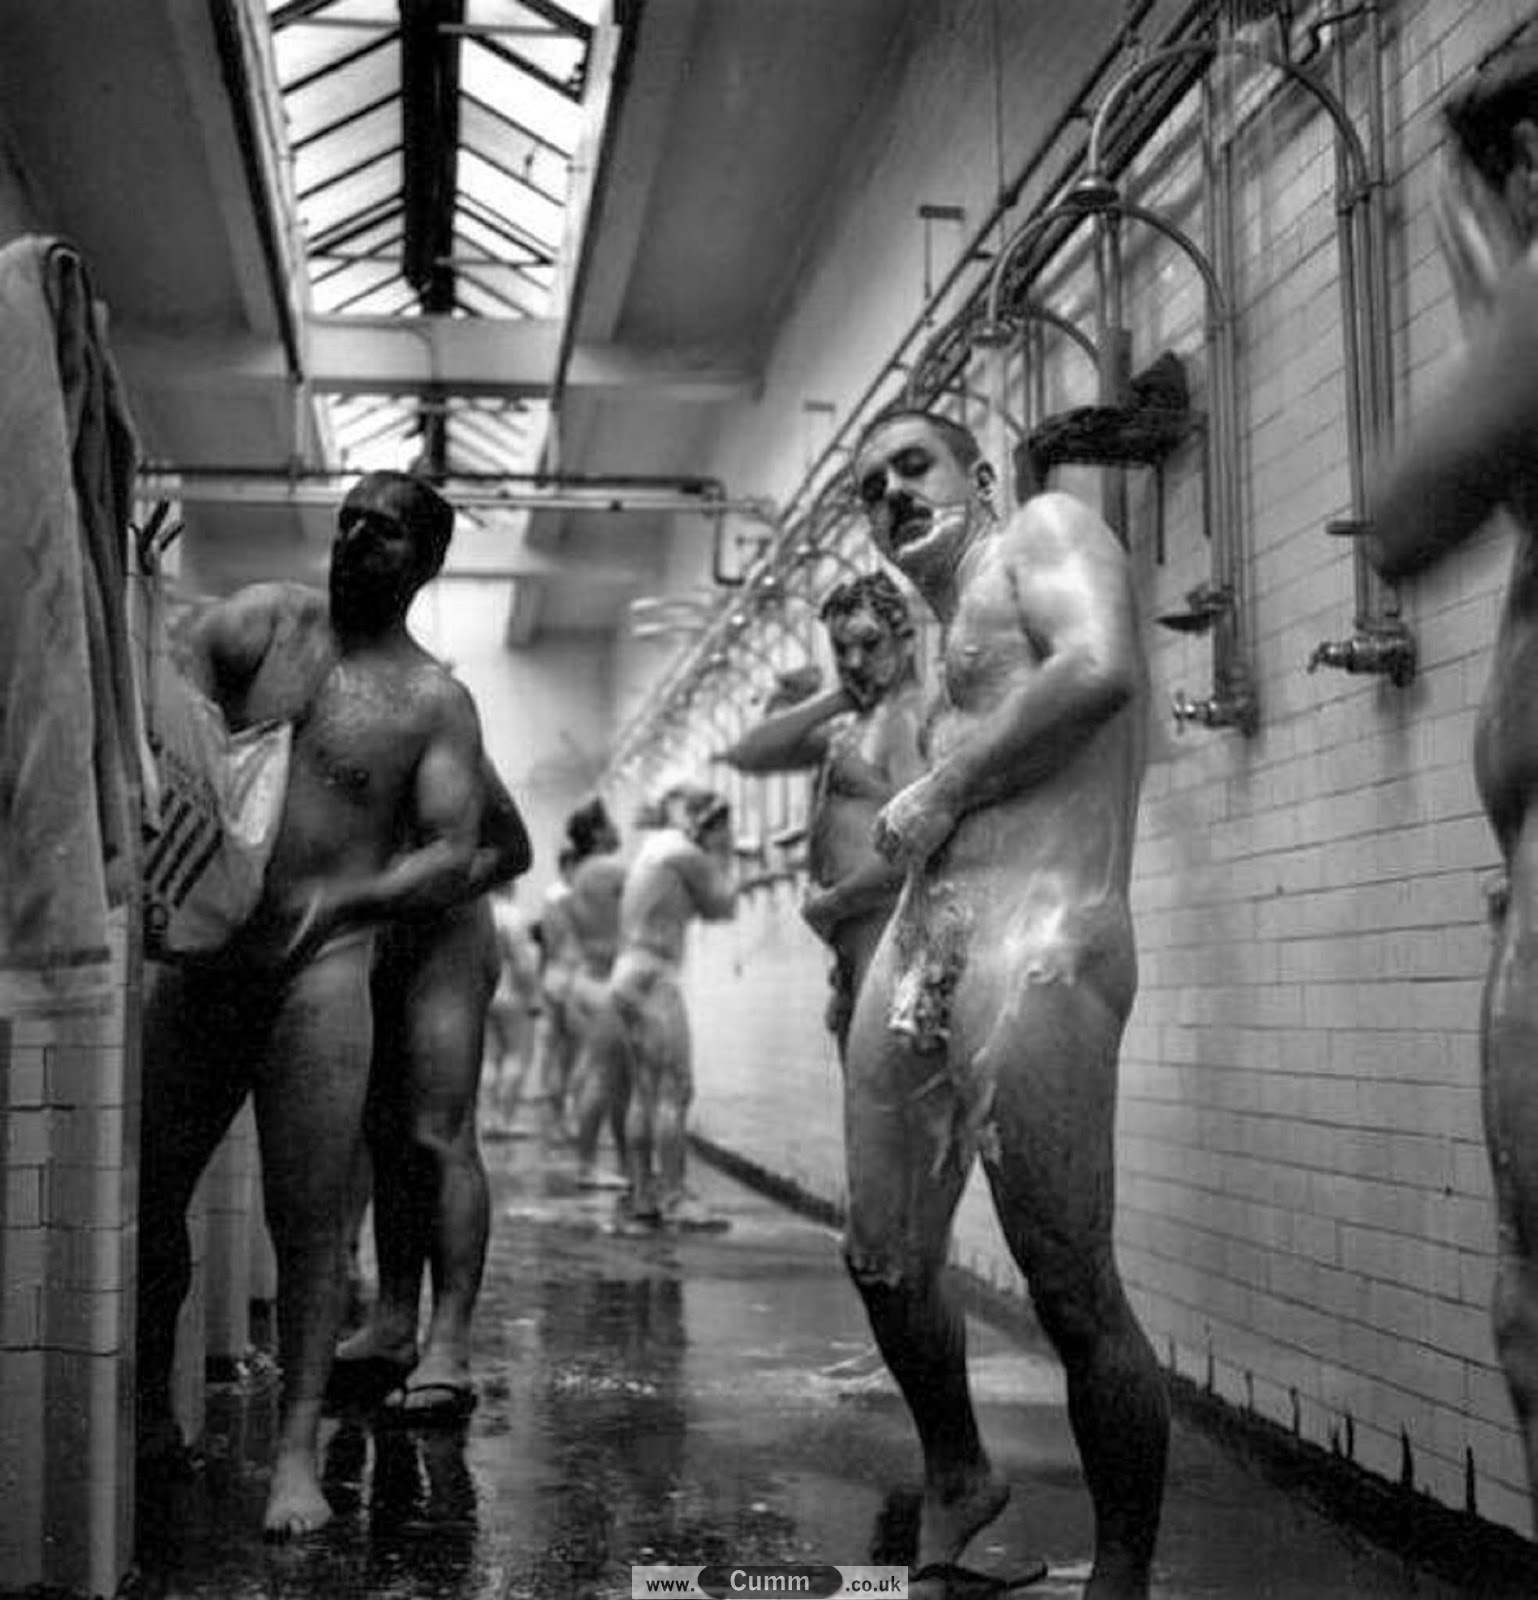 Men In The Showers